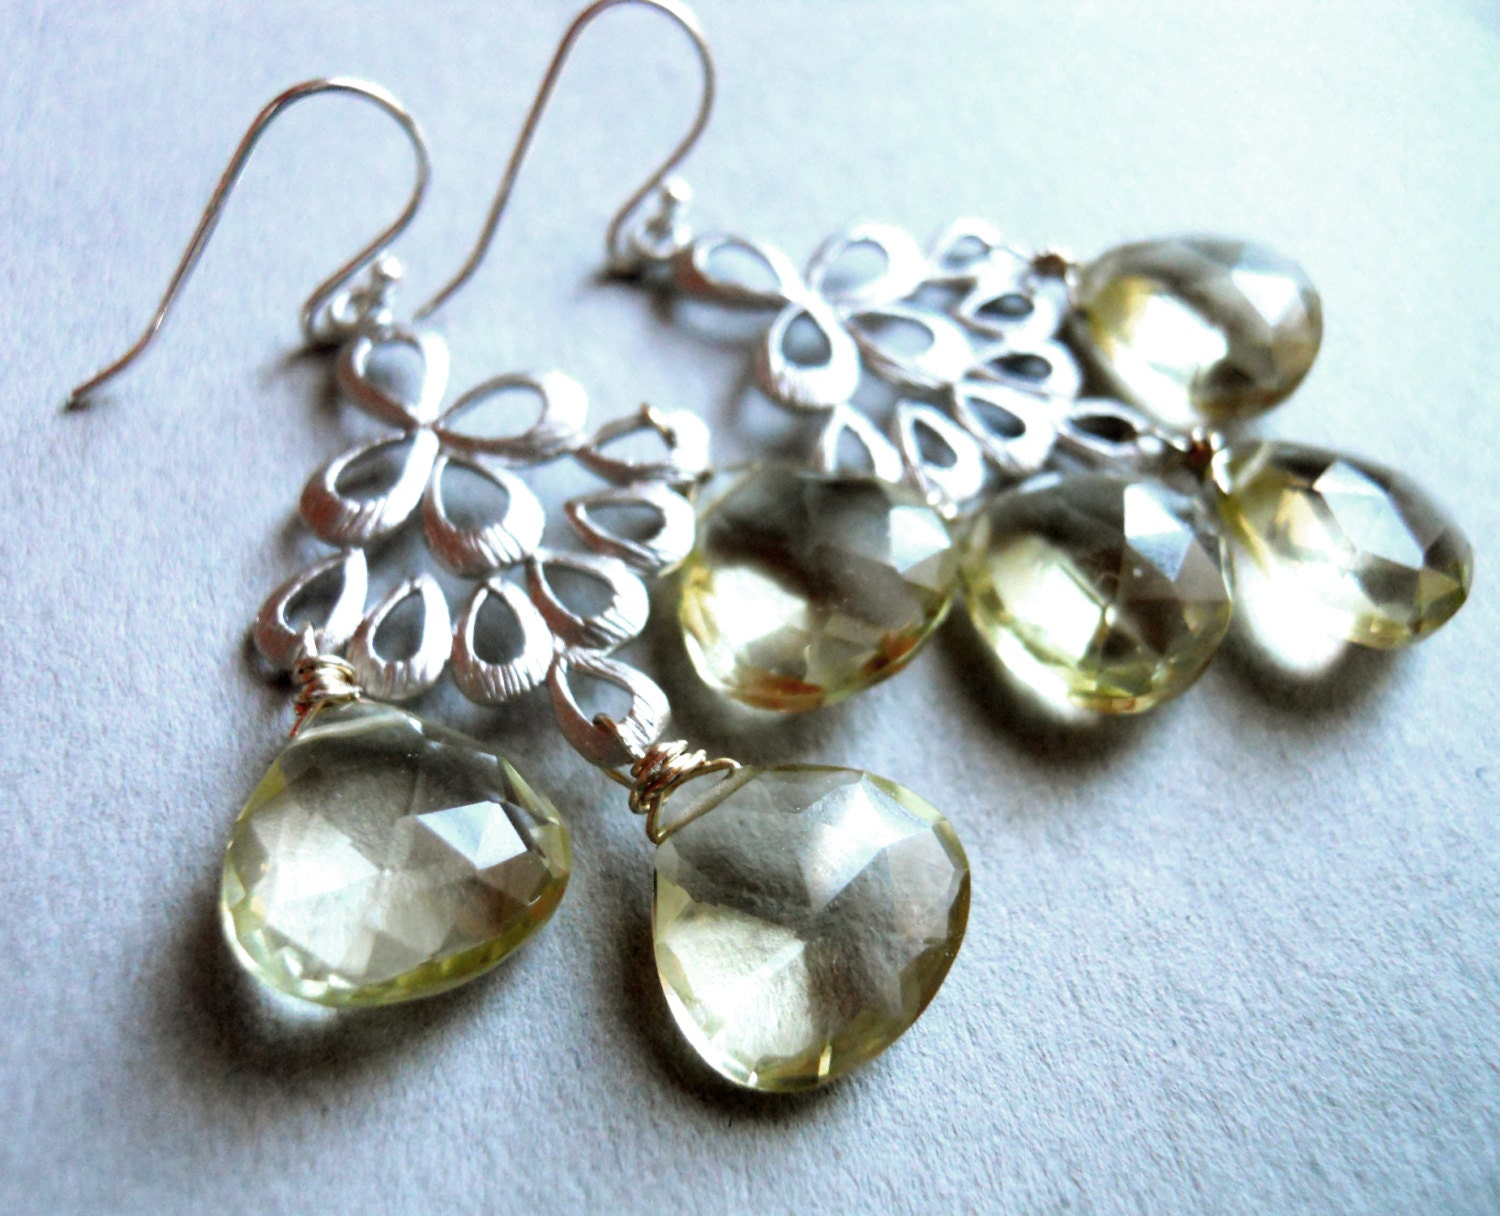 Lemon Quartz Matte Silver Chandelier Earrings / Orient Collection - $105.00 USD